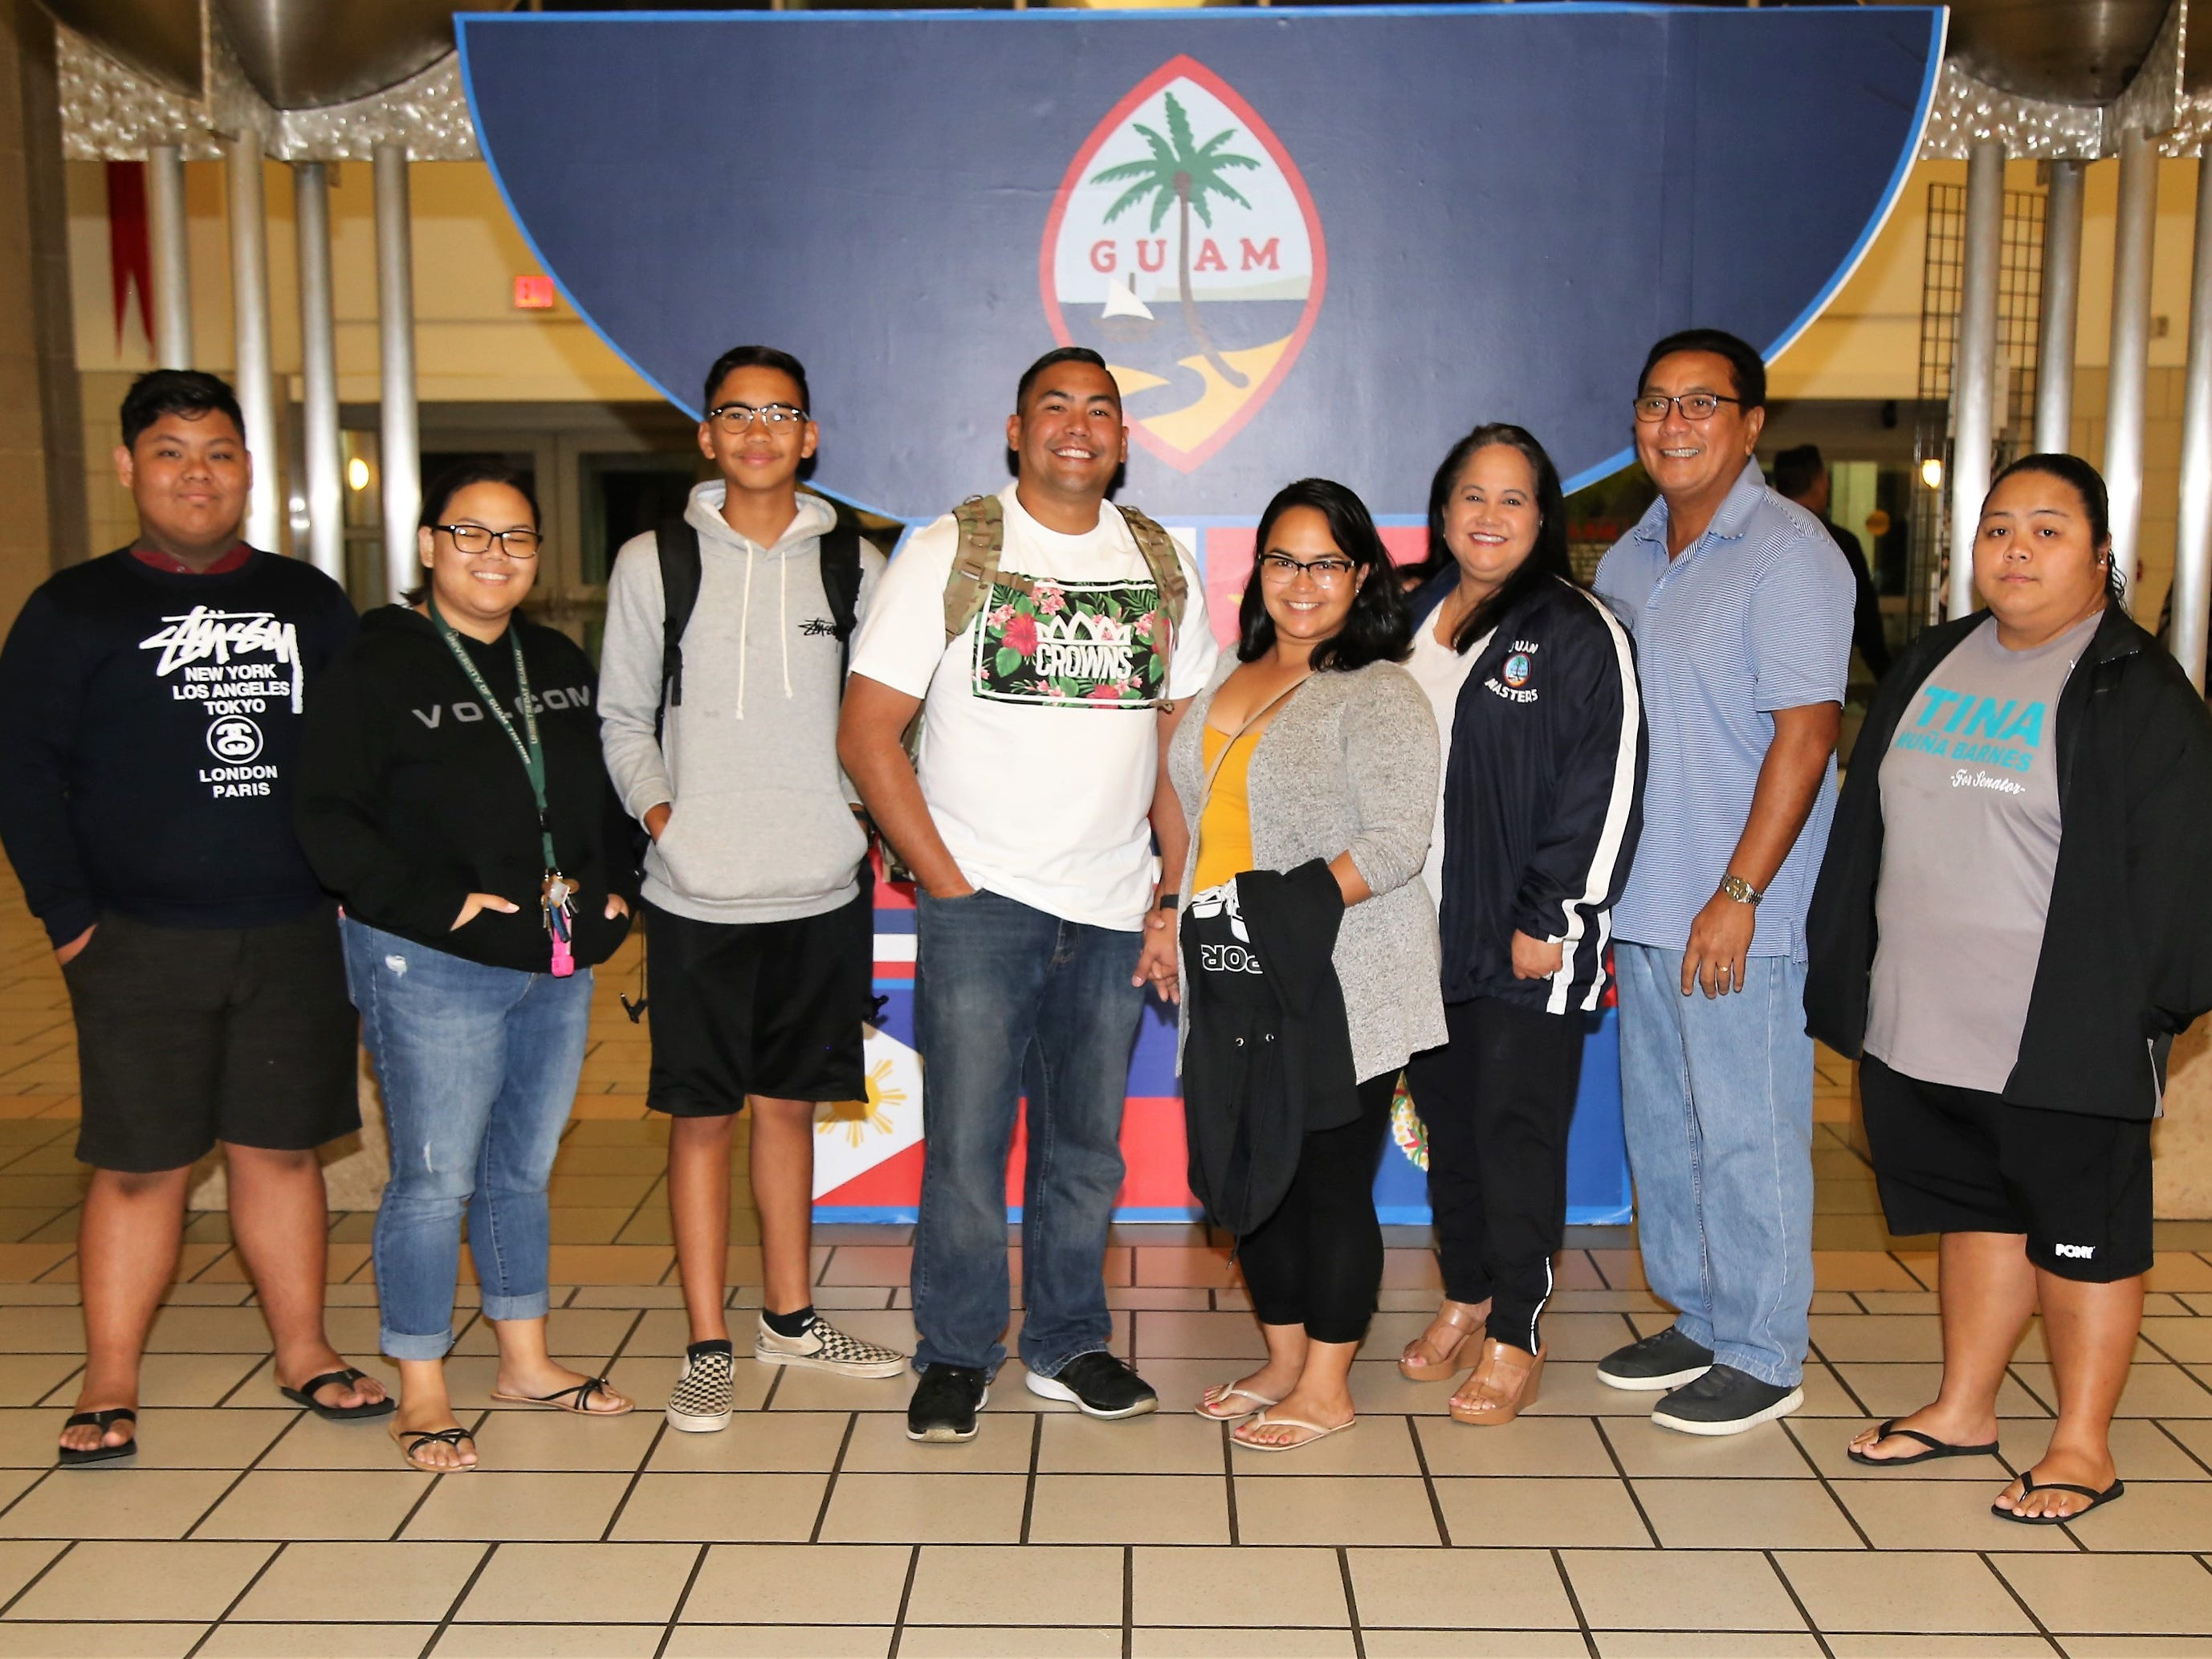 Technical Sgt. Jacob Barnes, from the Guam Air National Guard's 254th Air Base Group's Cyber Flight, at center in white, poses for a photo with family members at the Guam International Airport Authority.